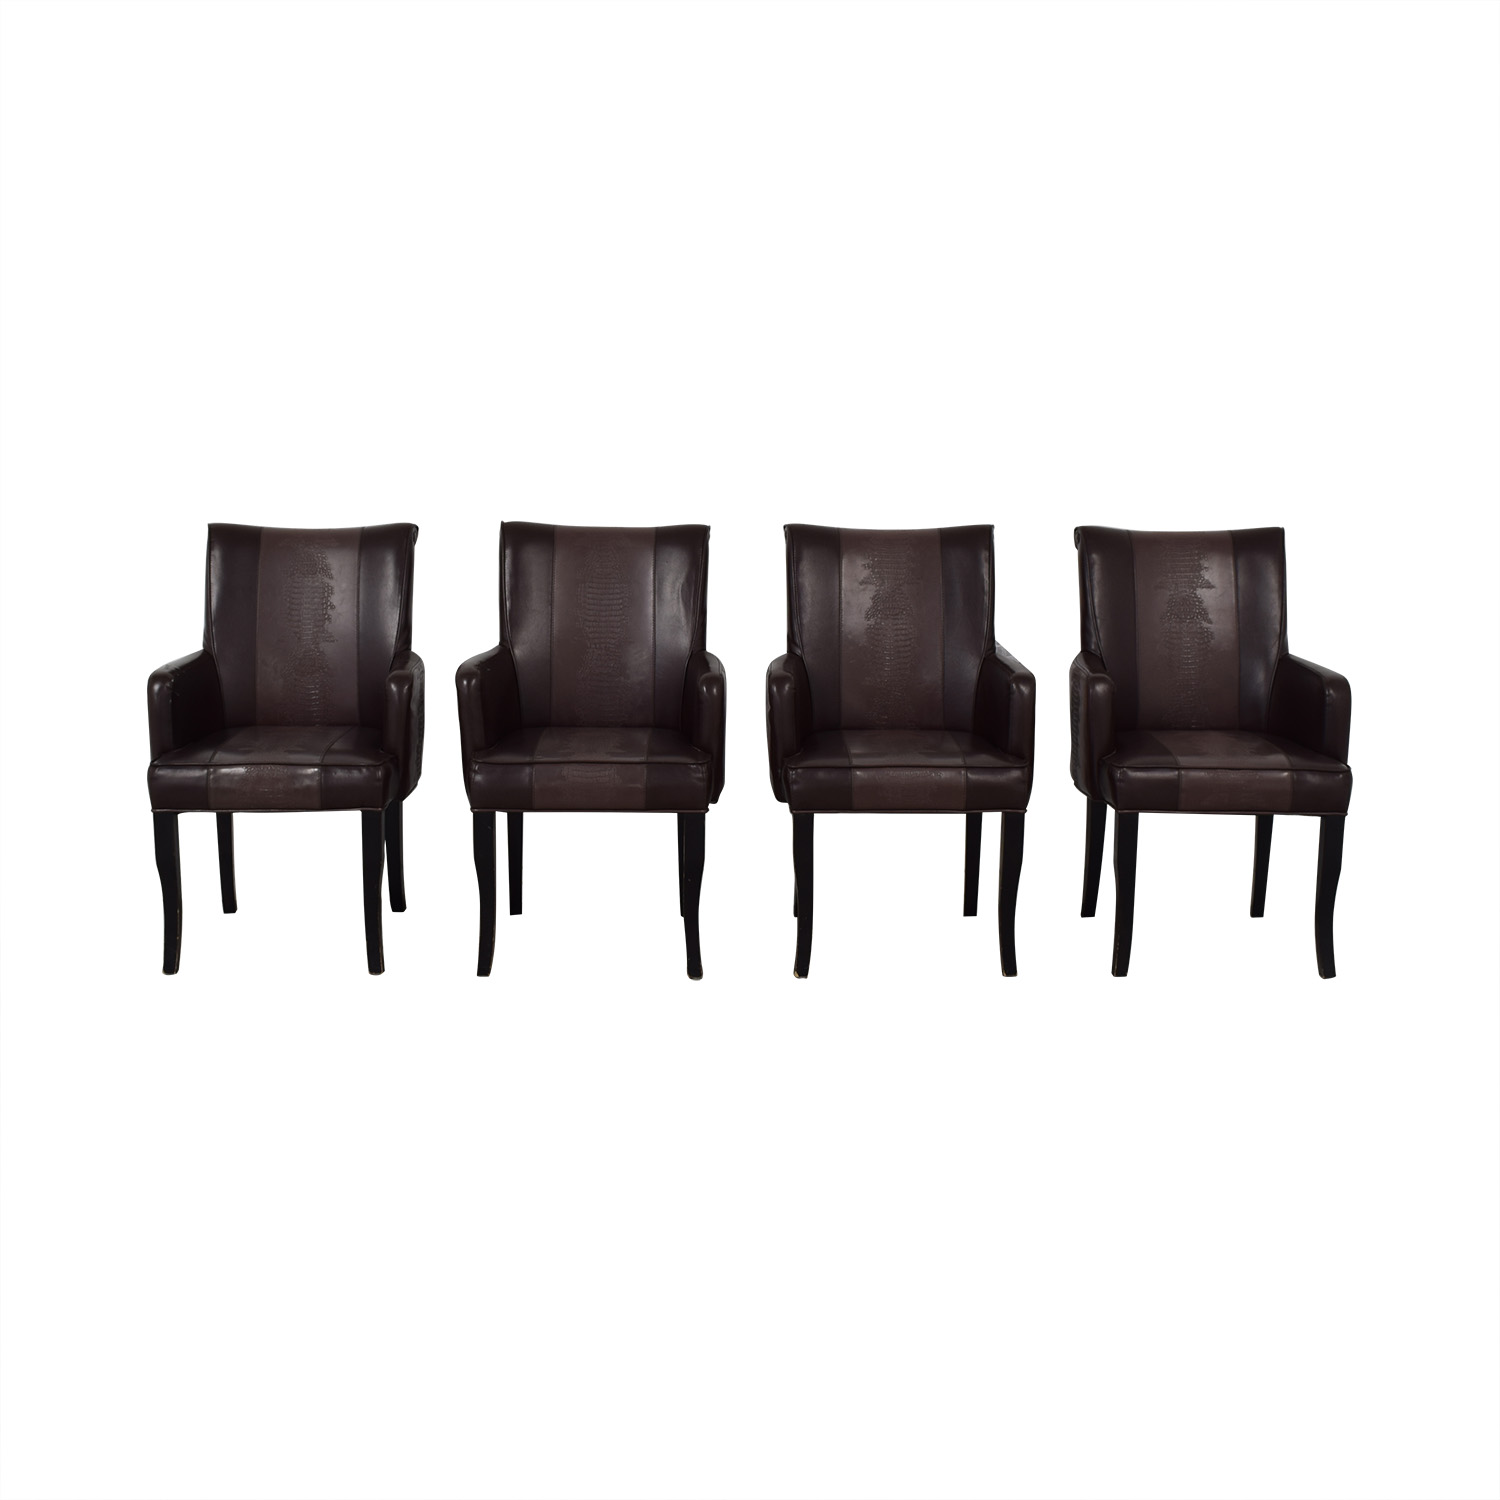 Bloomingdale's Bloomingdale's Brown Leather Dining Chairs dimensions